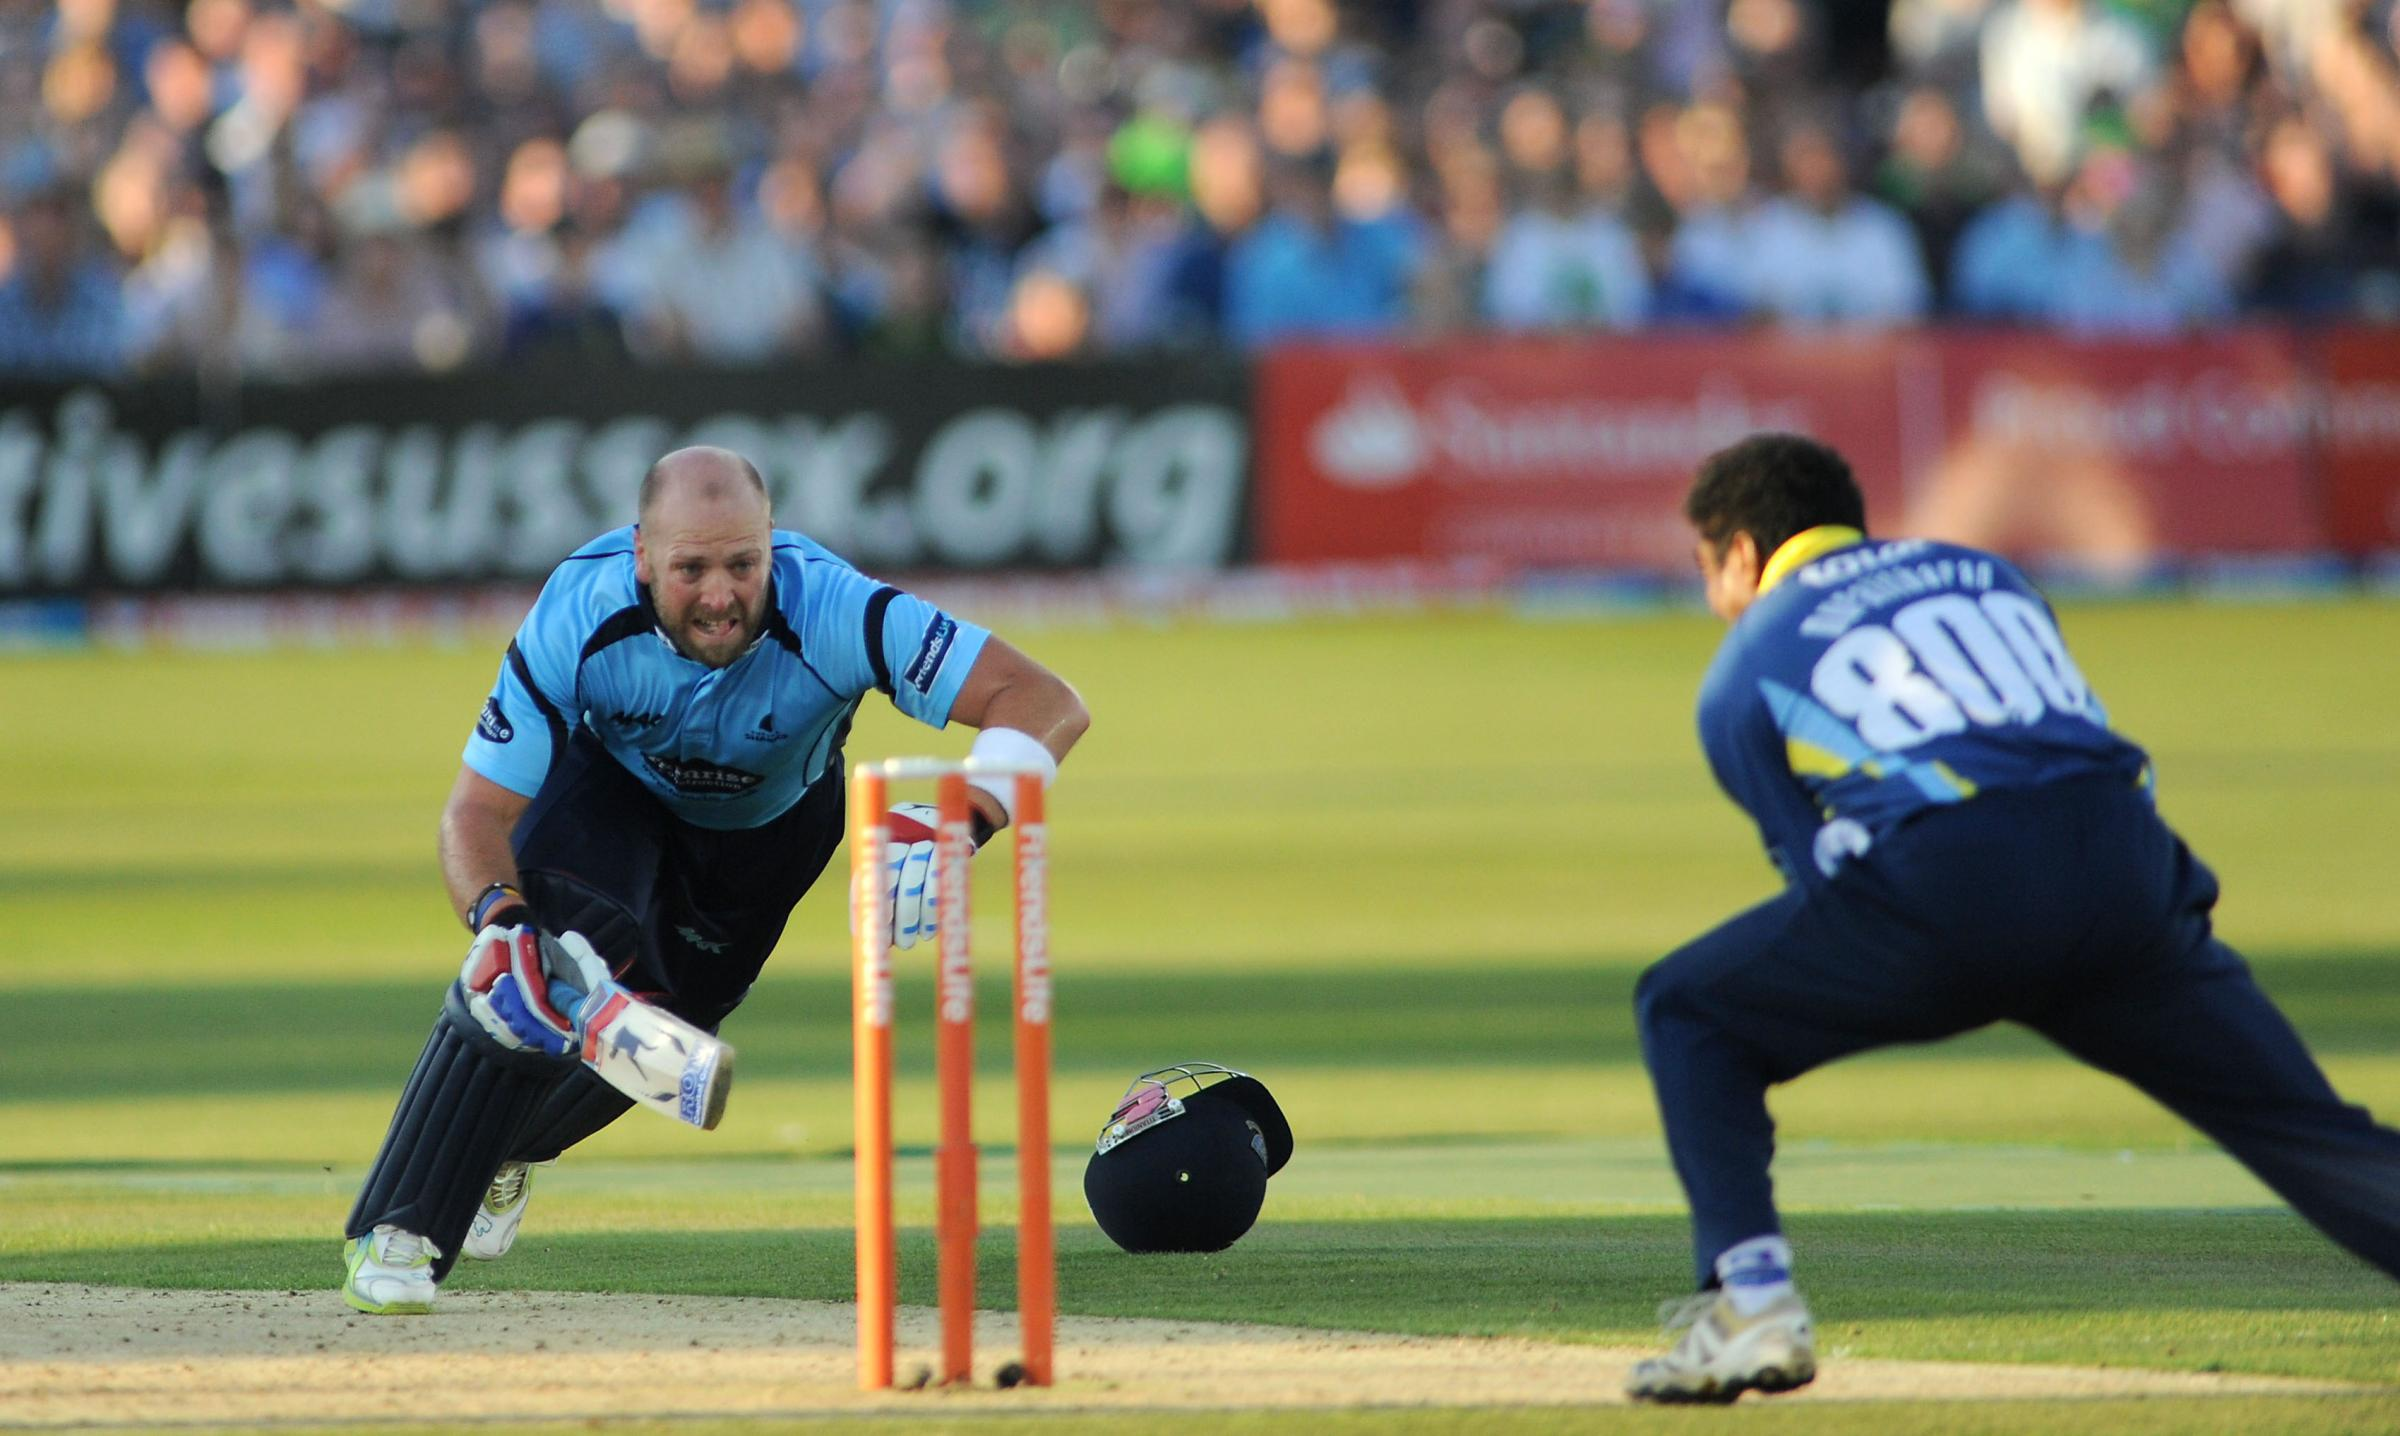 Matt Prior has signed a new two-year deal at Sussex